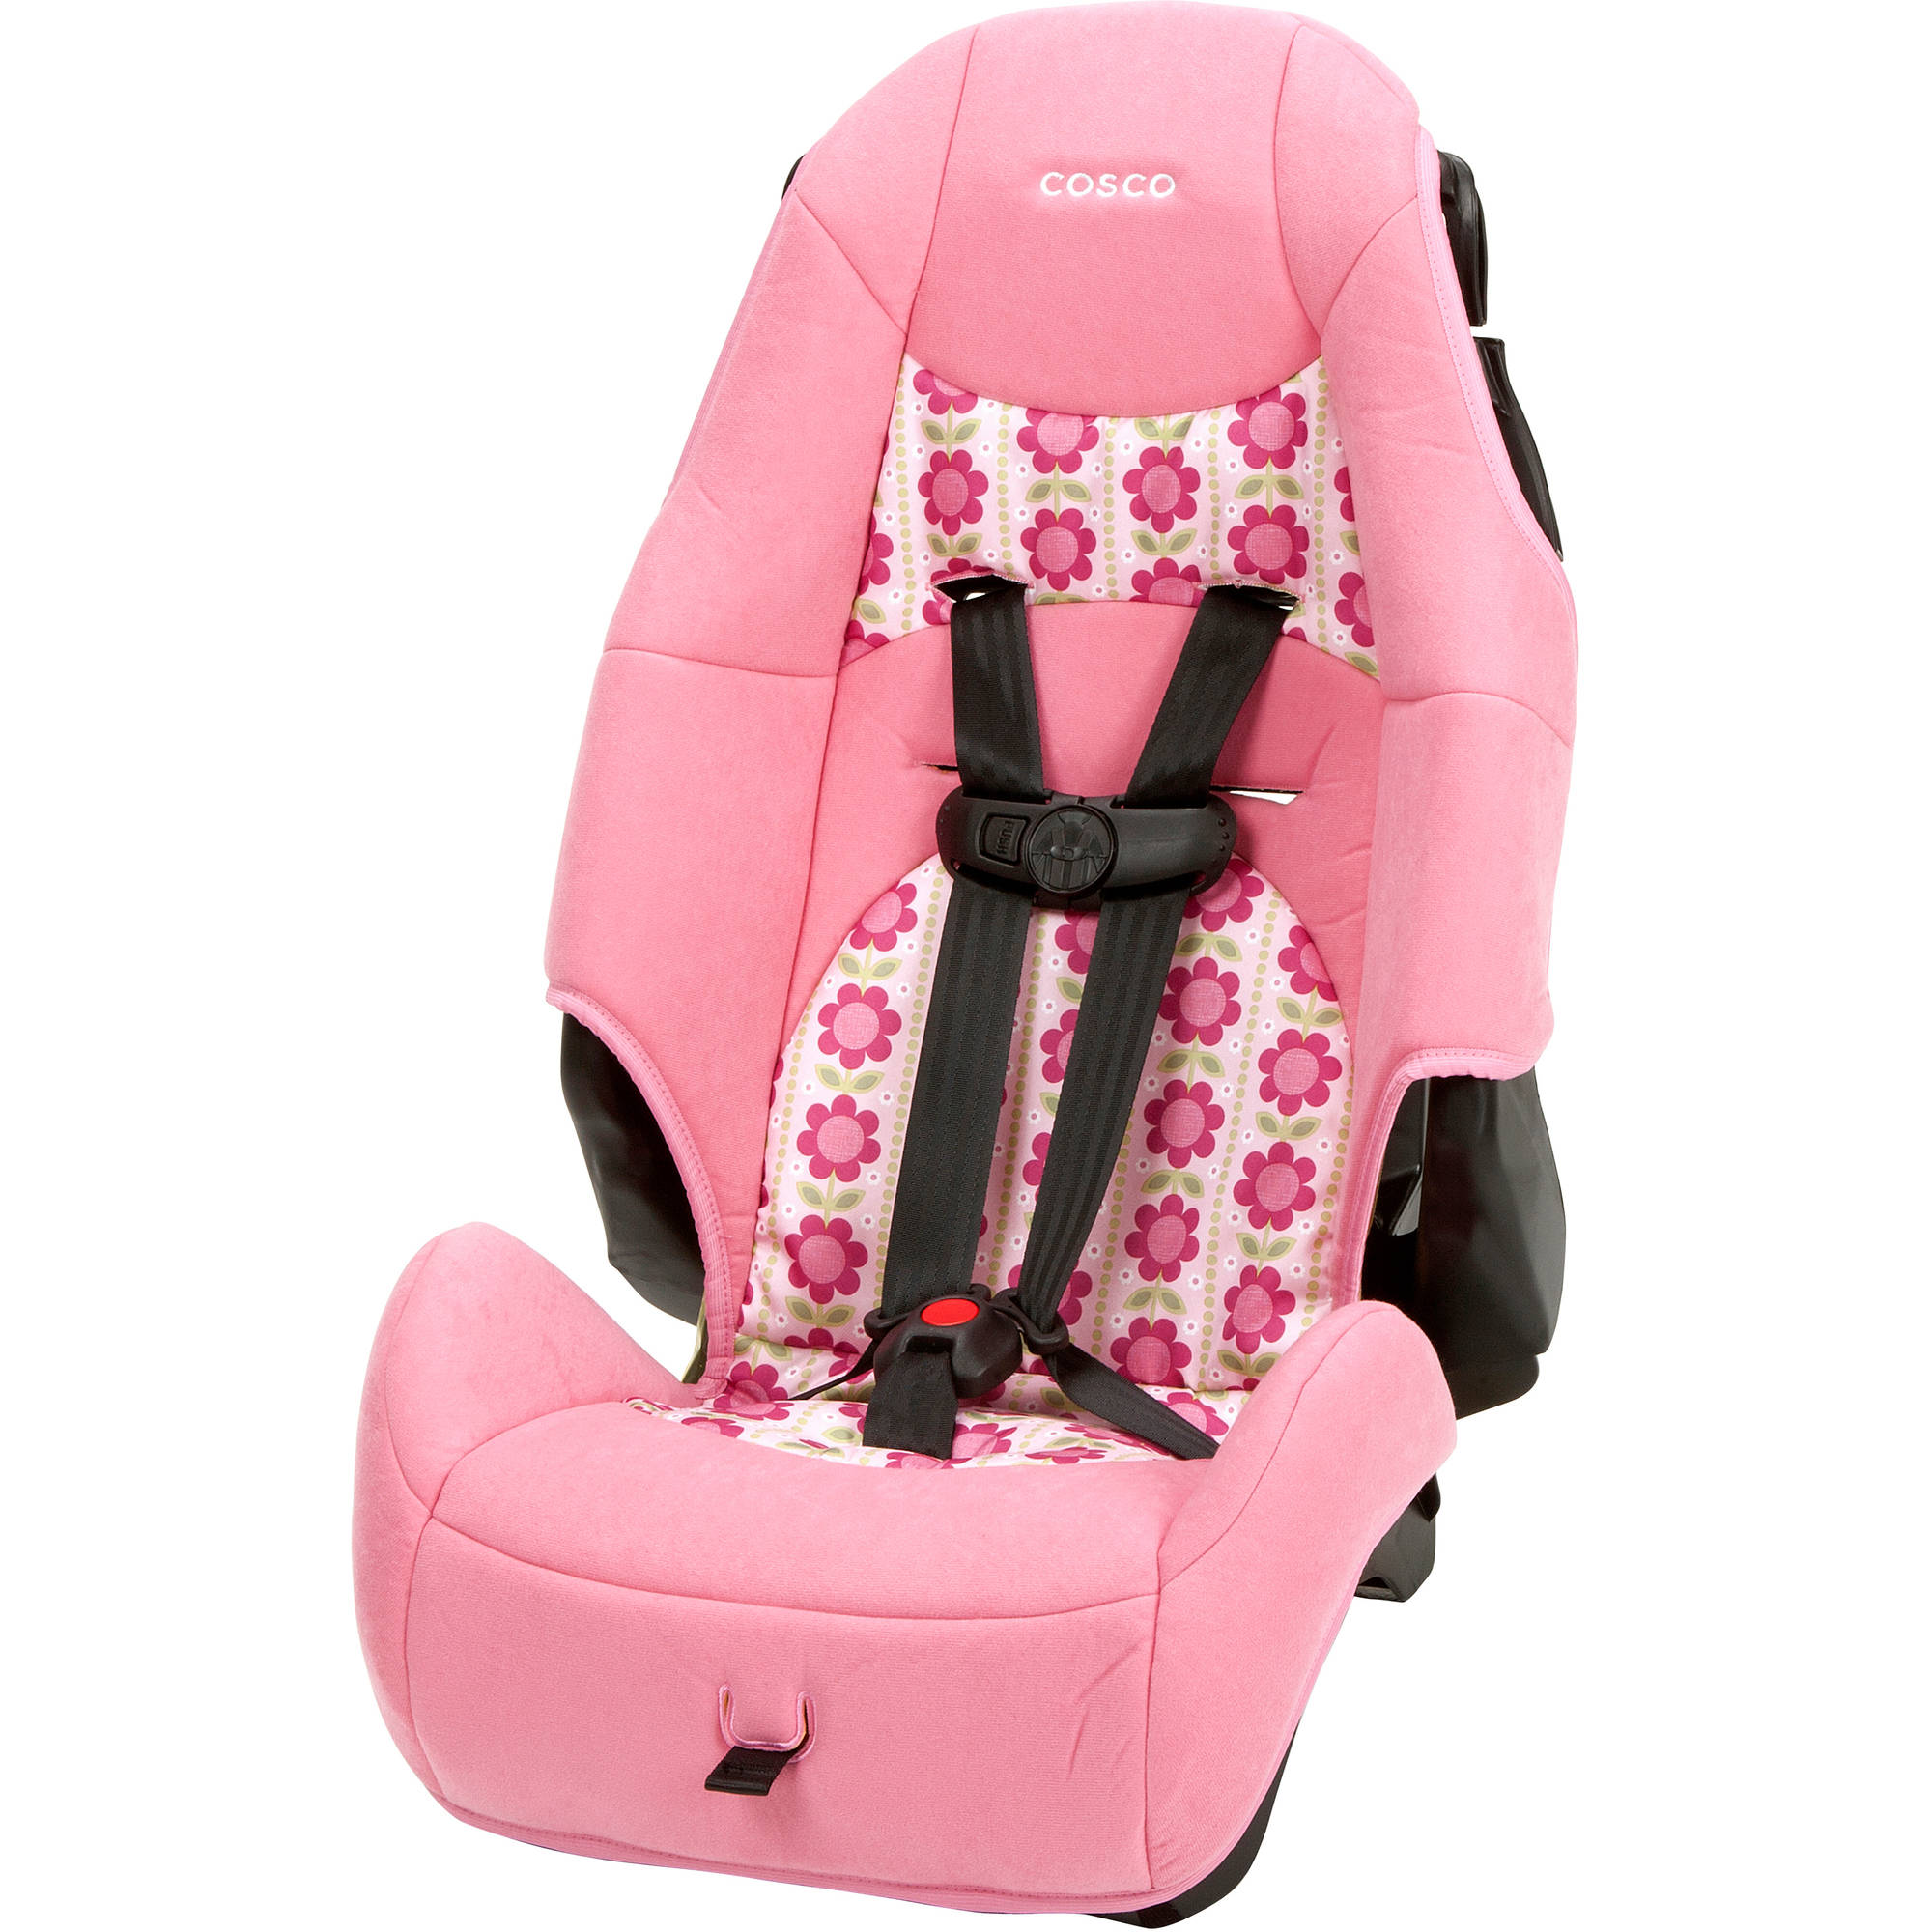 Cosco High Back Booster Car Seat - Abby Lane